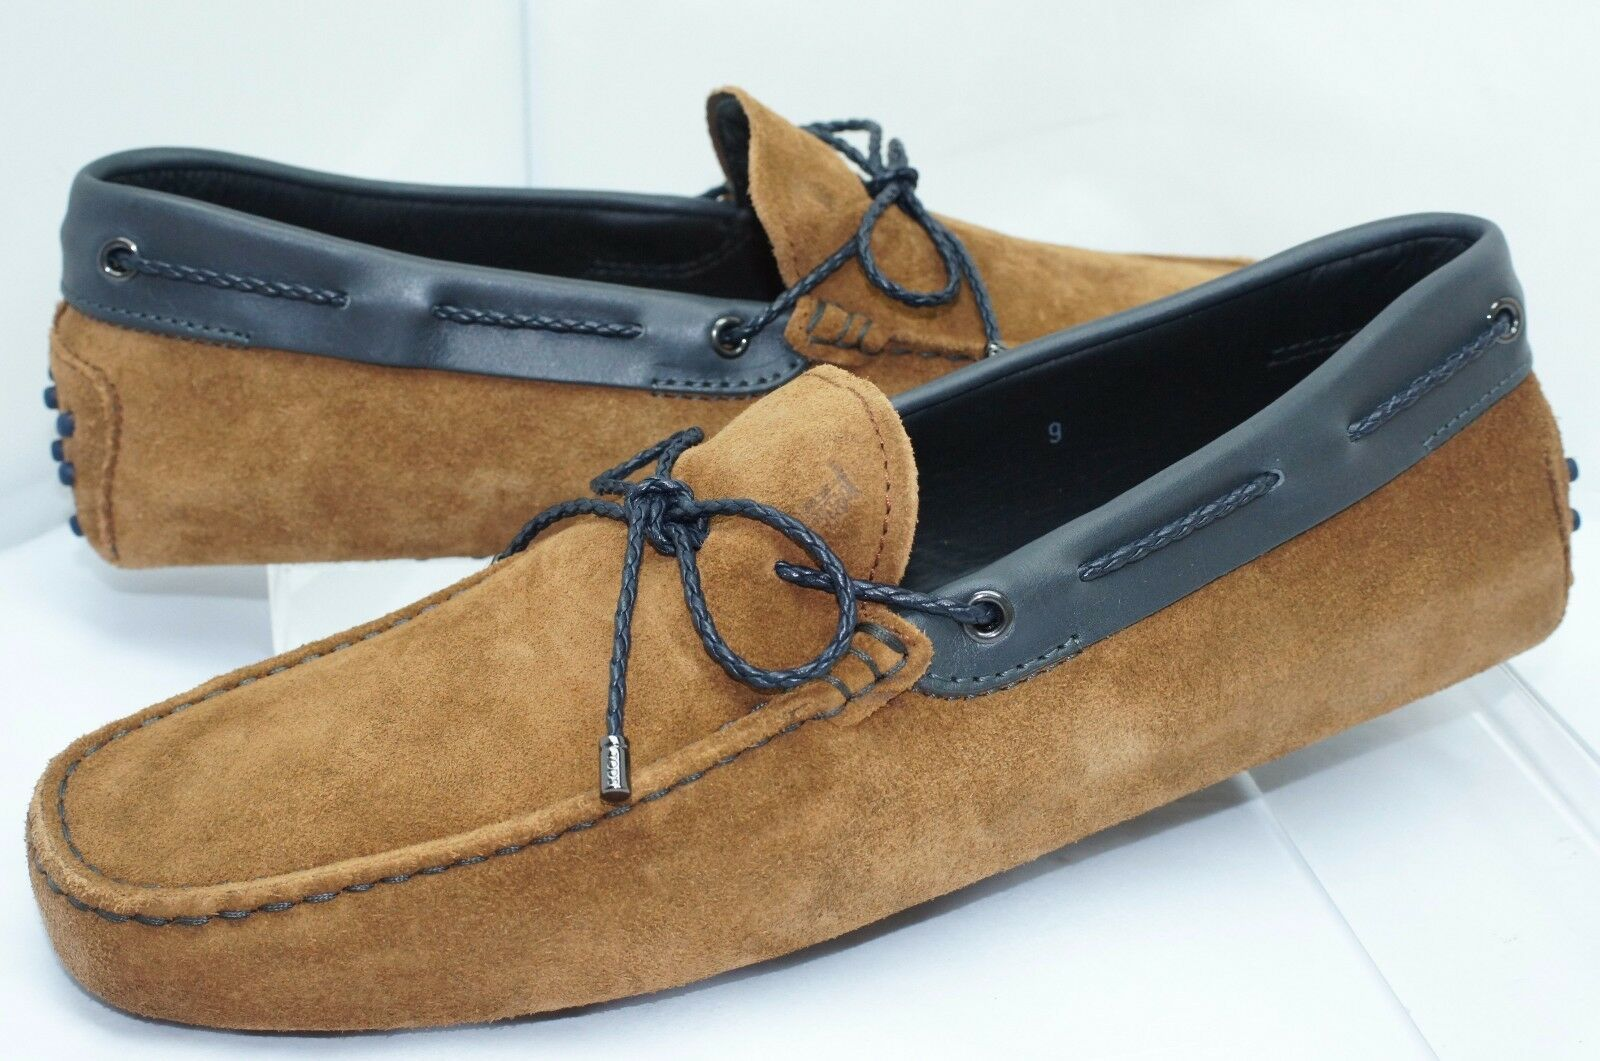 New Tod's Men's Brown Shoes Woven Lace Loafers Size 9 Slip Ons Drivers Suede